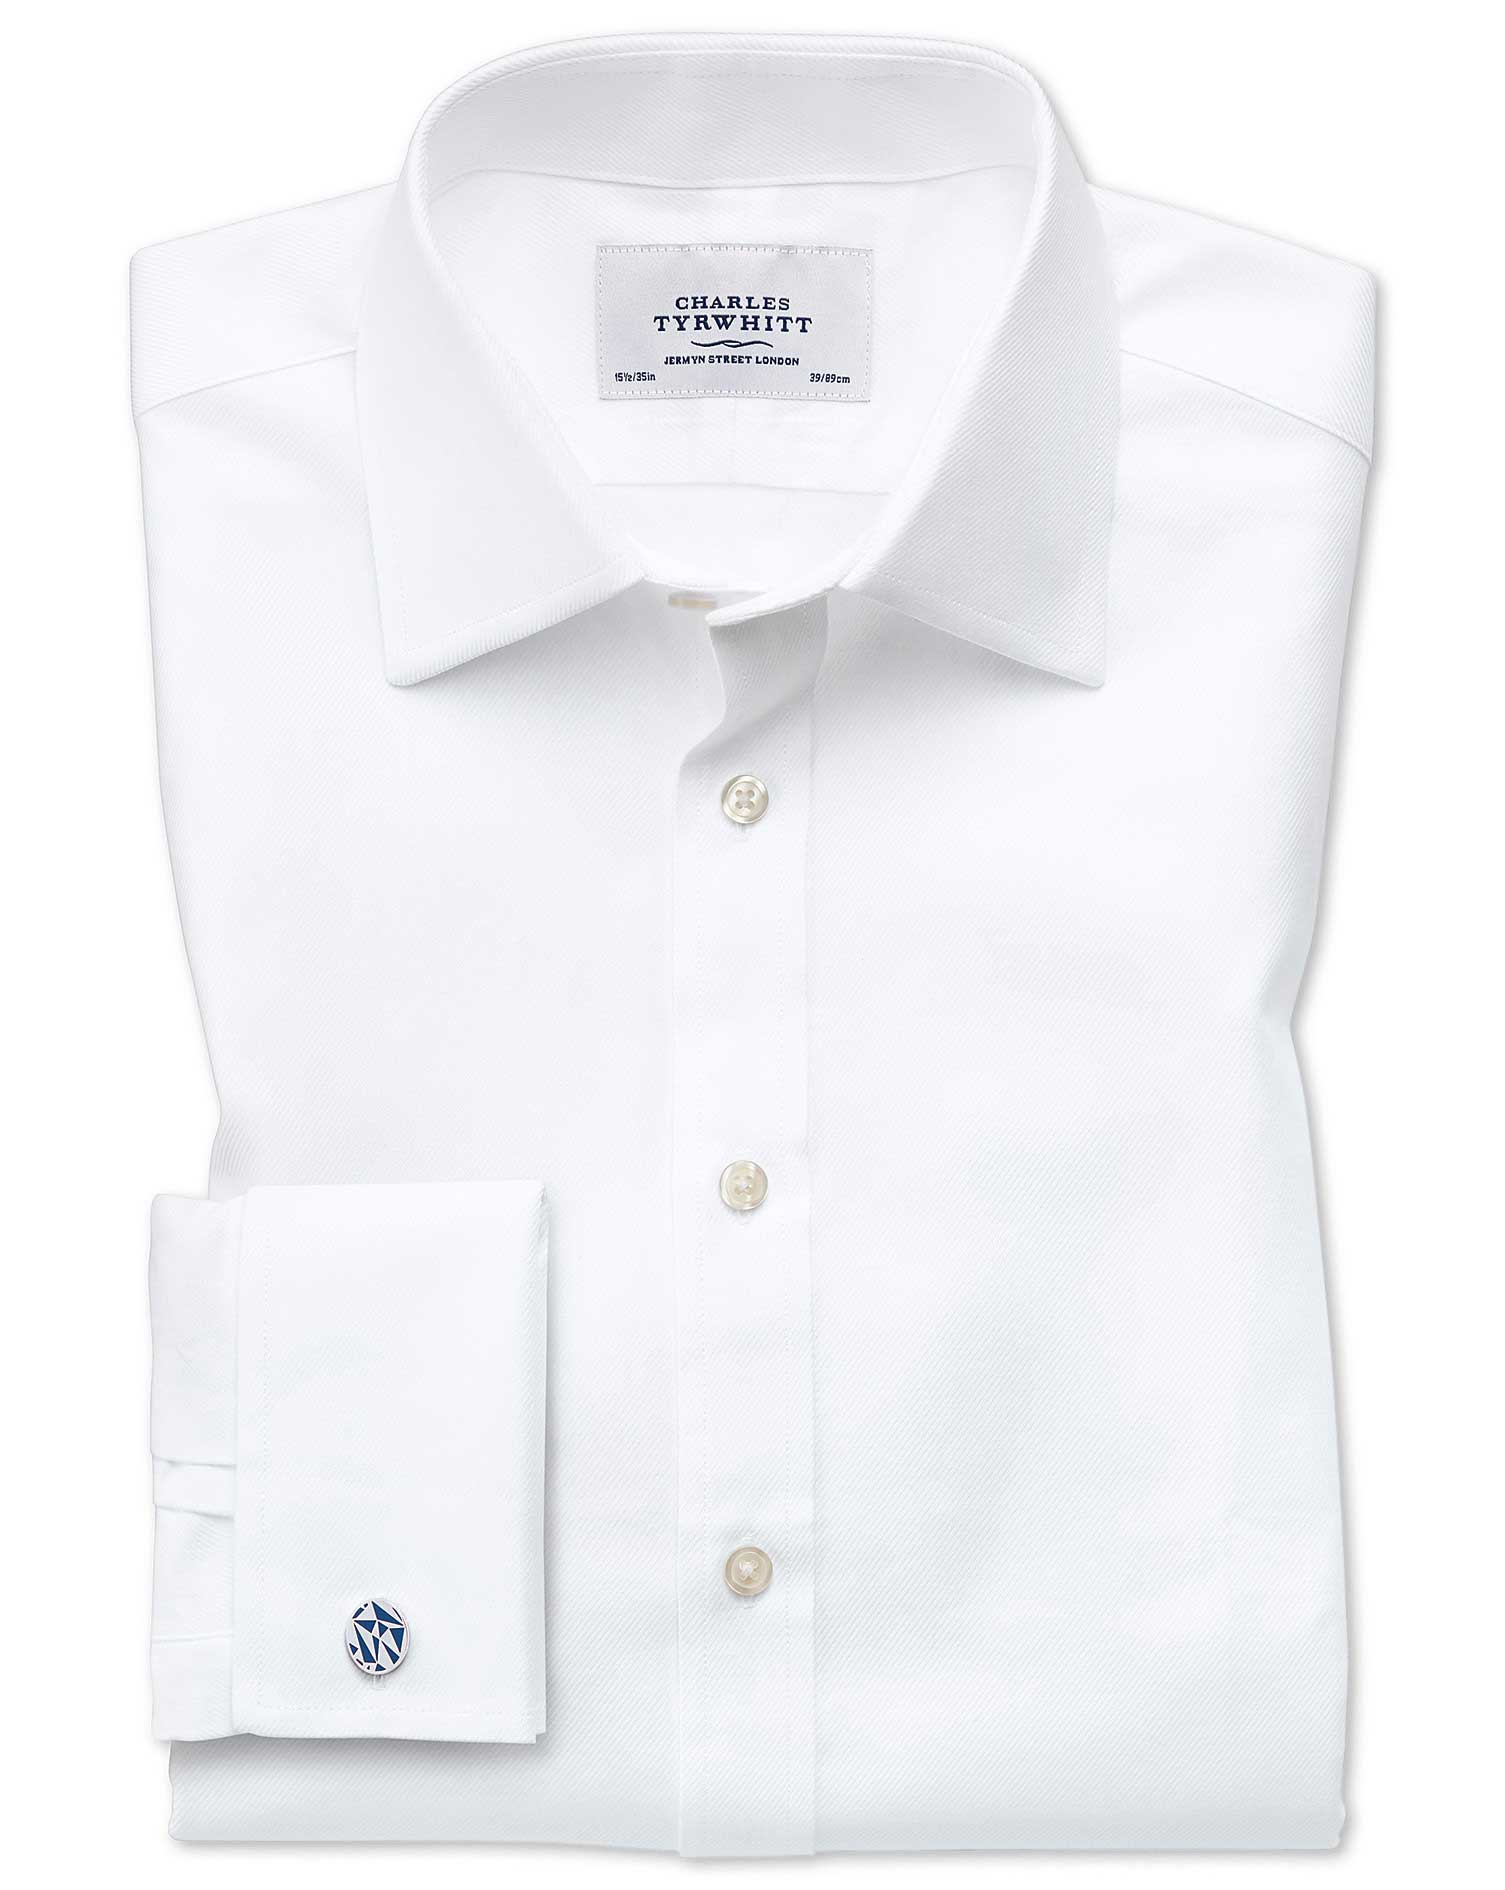 Classic Fit Egyptian Cotton Cavalry Twill White Formal Shirt Double Cuff Size 16/38 by Charles Tyrwh